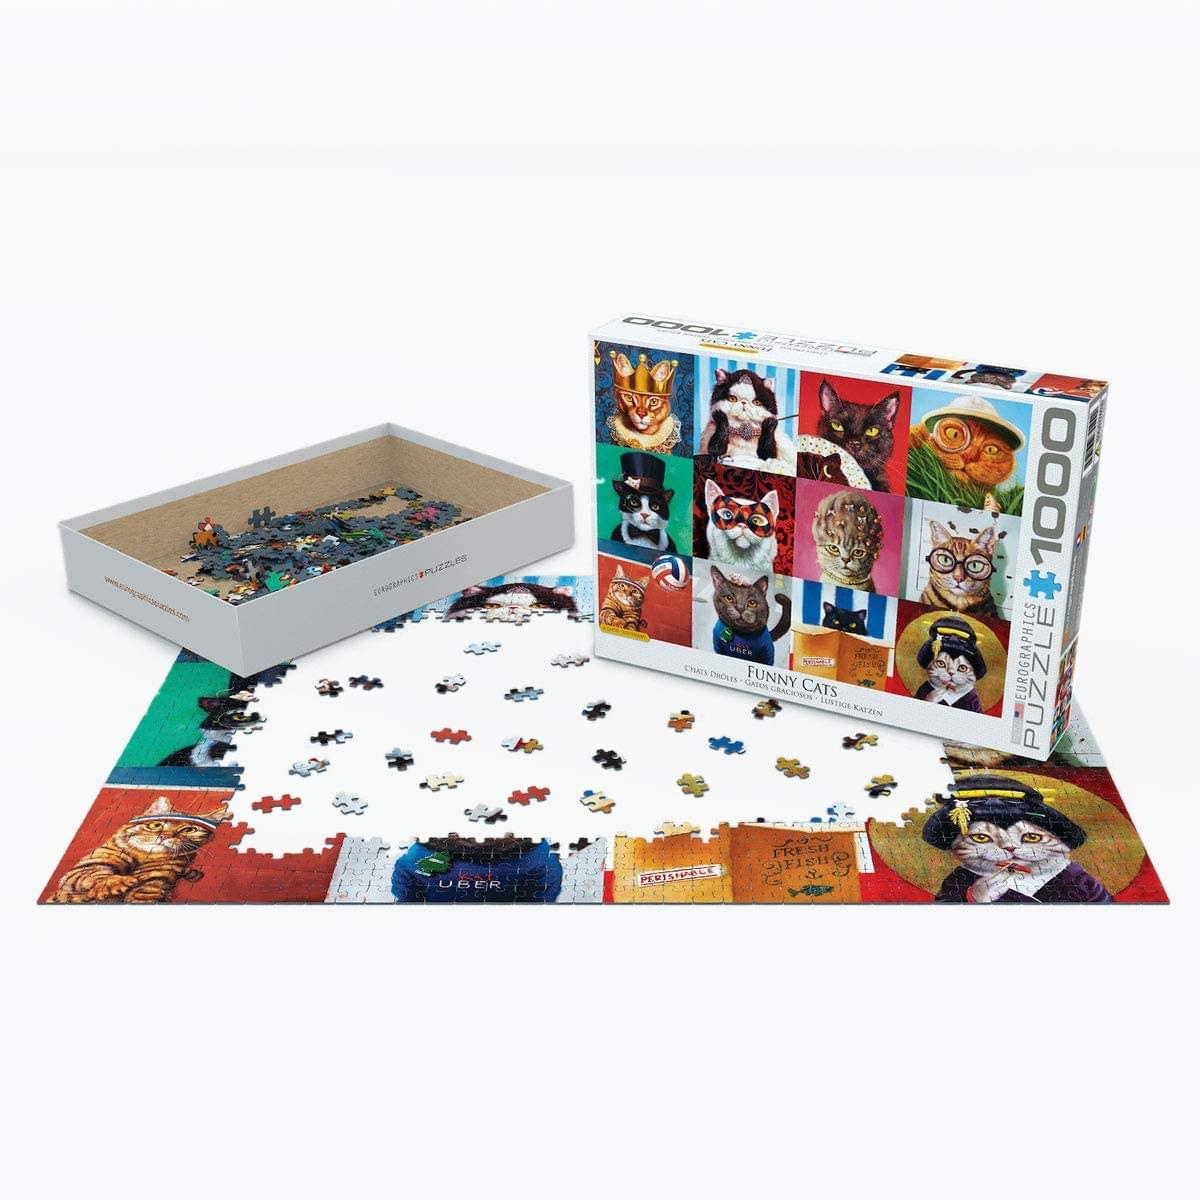 Funny Cats by Lucia Heffernan 1000 Piece Jigsaw Puzzle